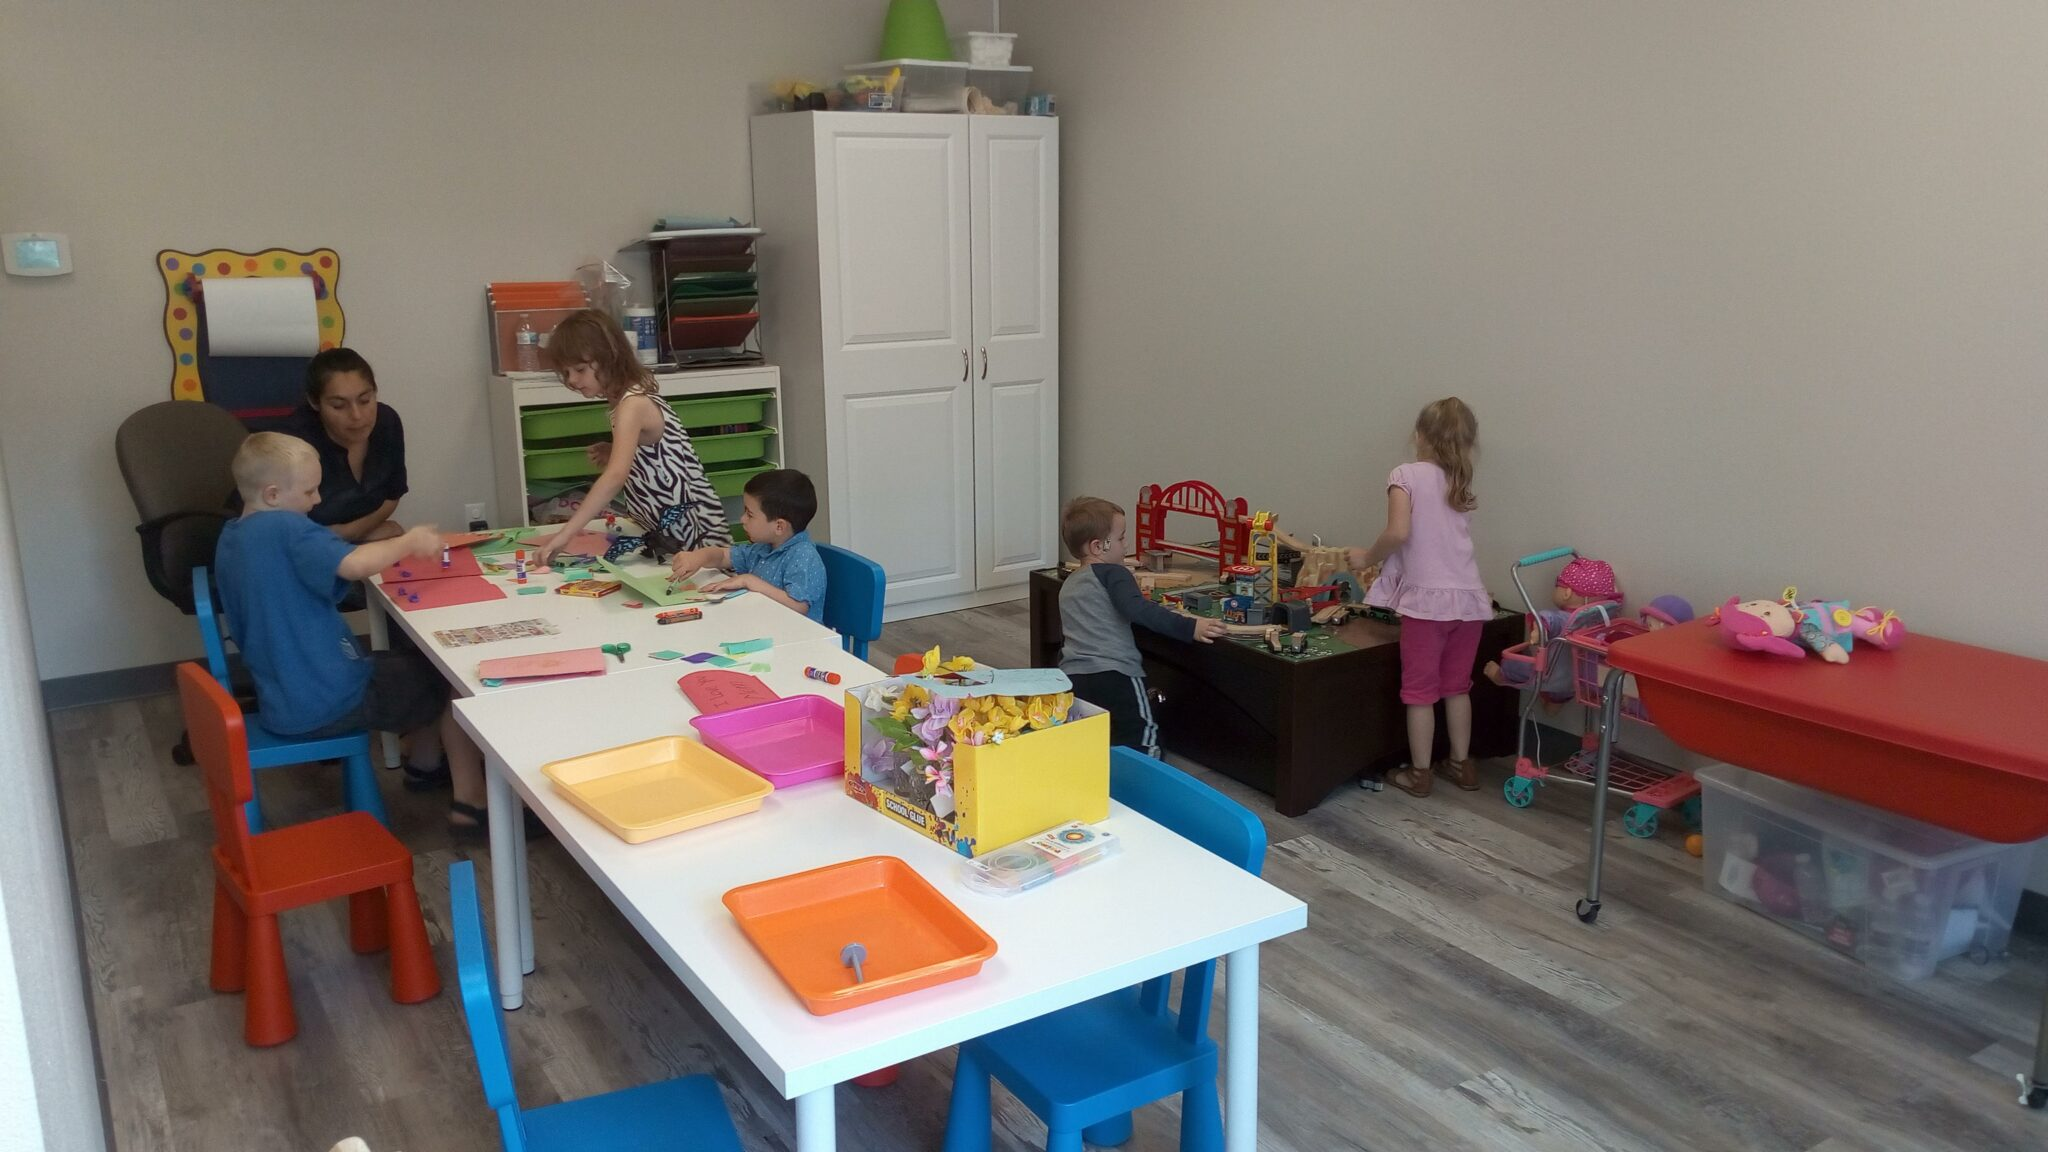 Children playing in the Imagination Station